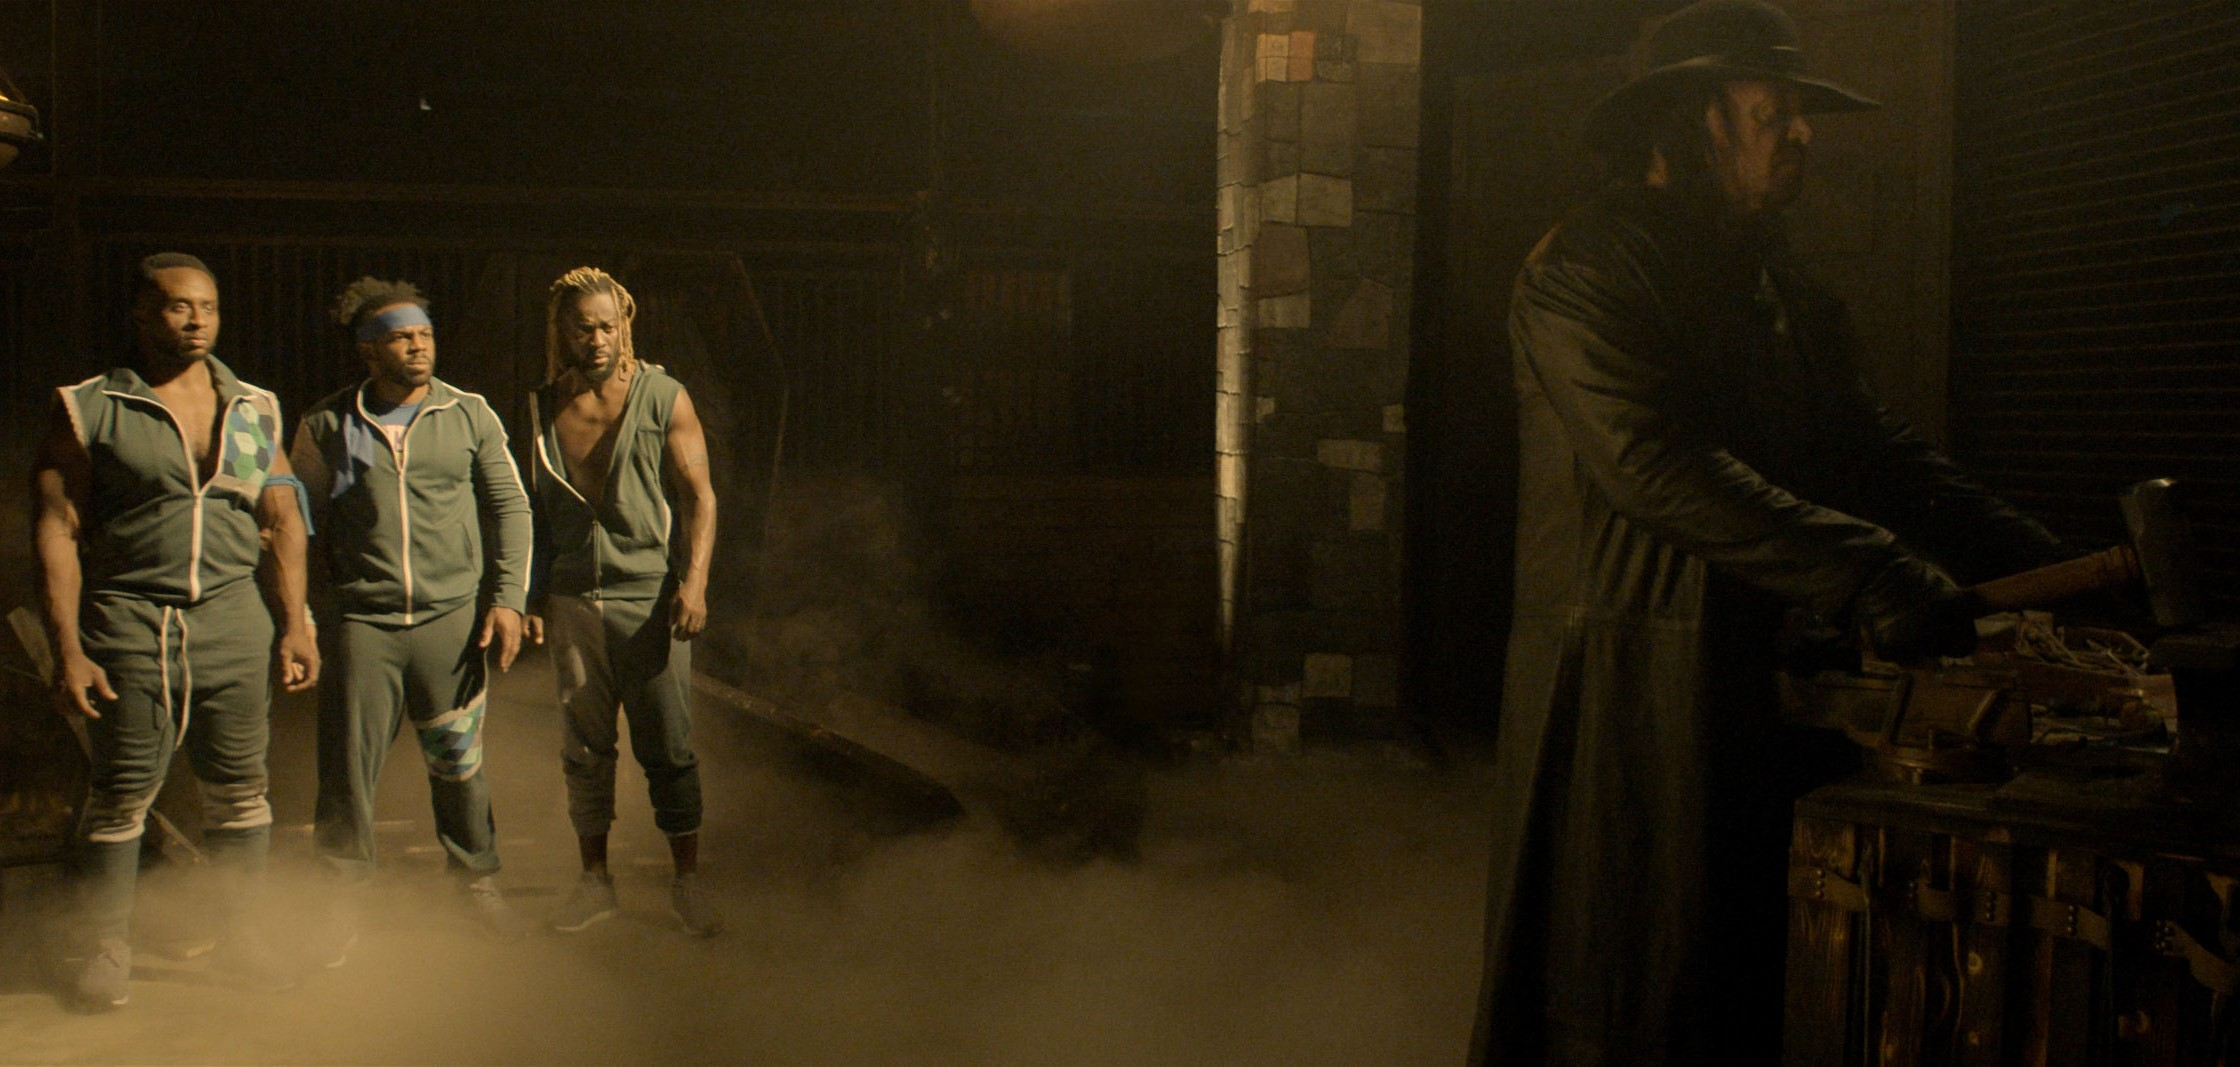 Netflix is releasing an interactive WWE horror movie on October 5th